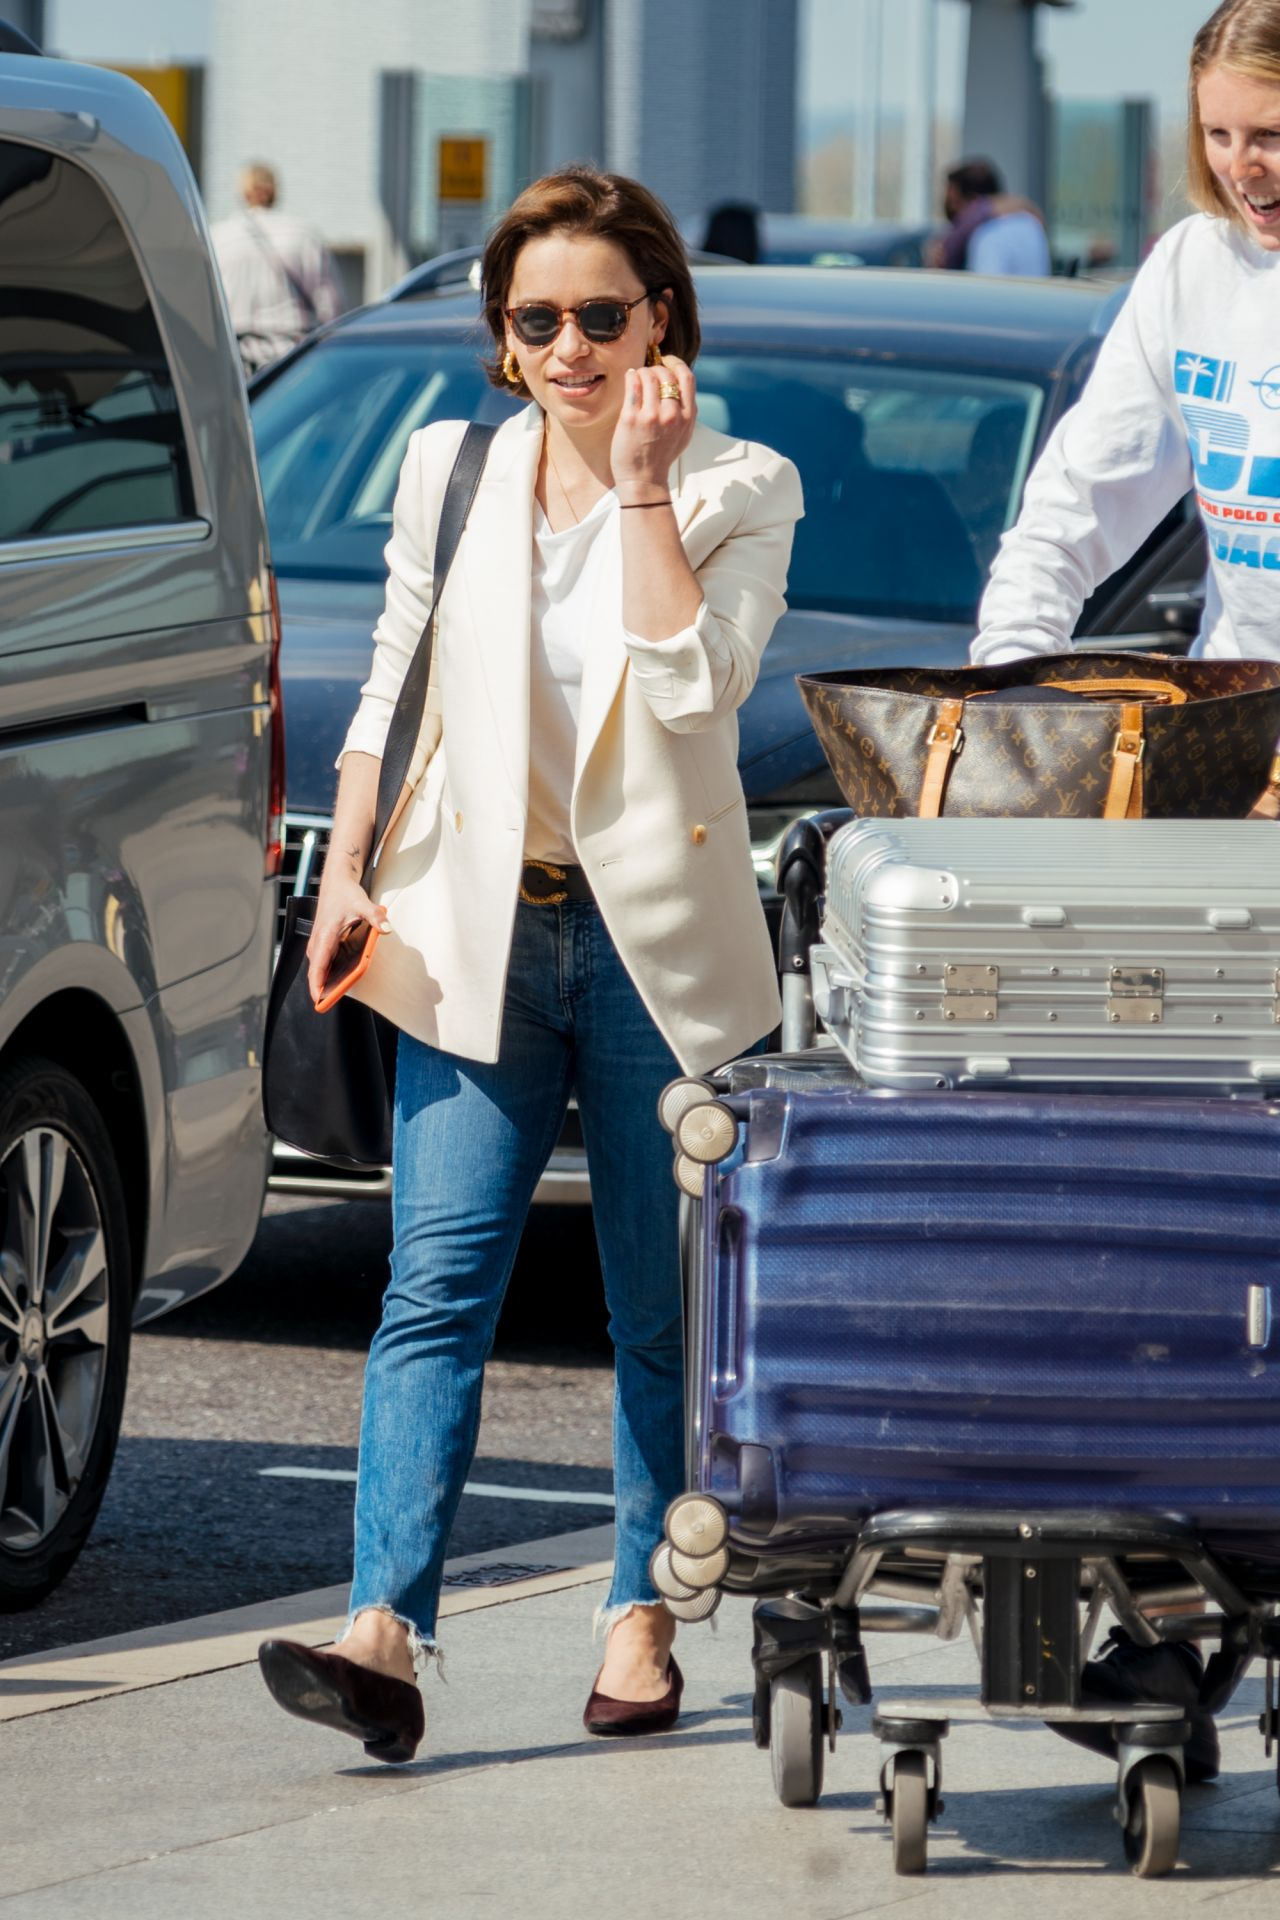 Emilia Clarke In Travel Outfit Heathrow Airport In